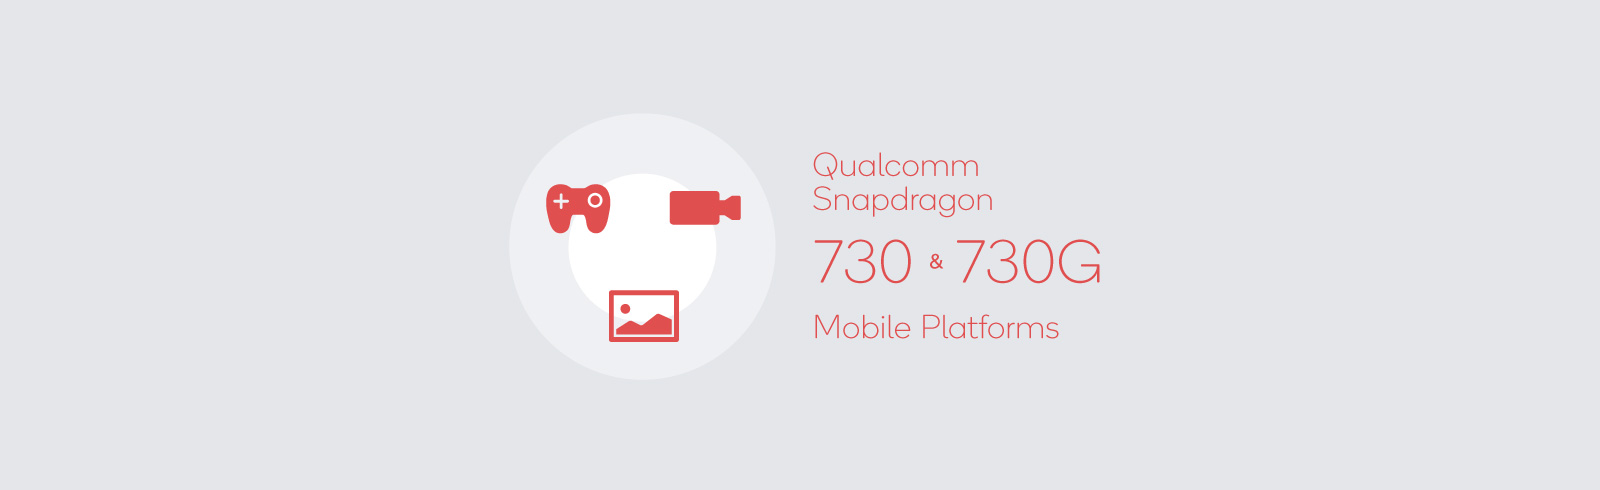 Qualcomm unveils the Snapdragon 730 and Snapdragon 730G SoCs for advanced gaming and AI